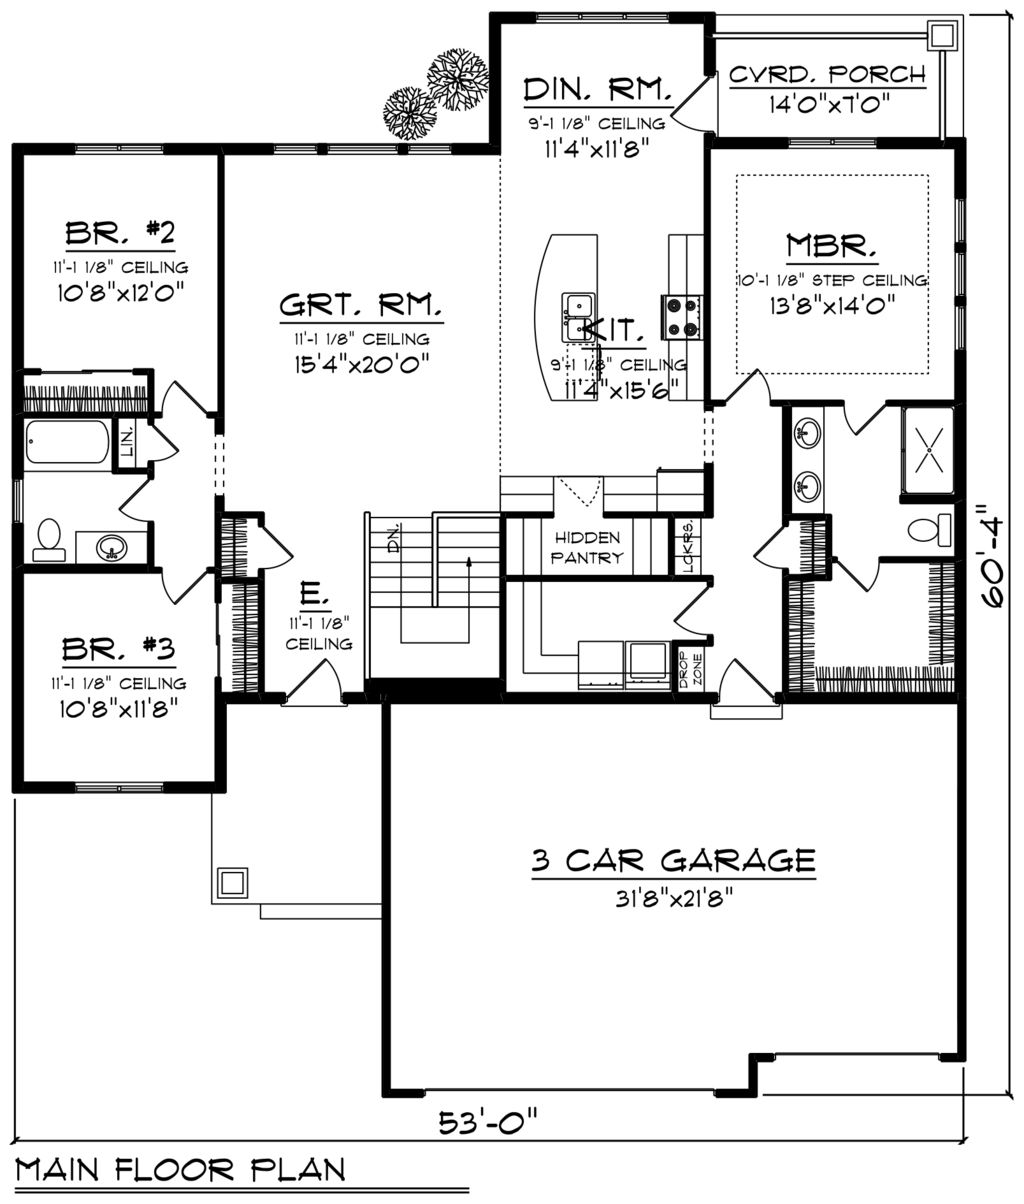 Ranch style house plan 3 beds 2 baths 1796 sq ft plan 70